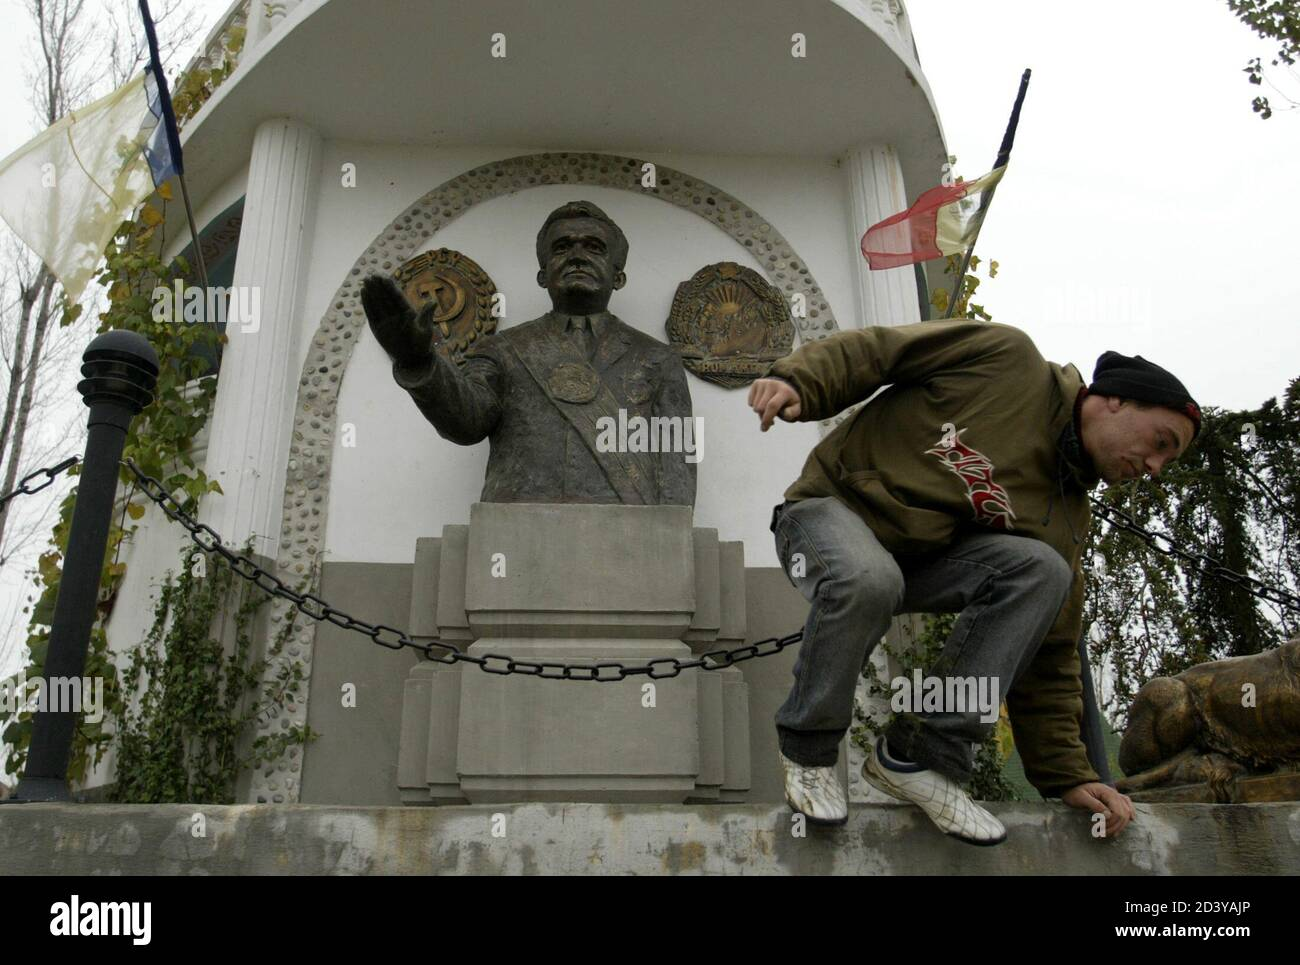 A workman jumps from a monument to Romania's late Stalinist dictator Ceausescu in a private park near Craiova.  A workman jumps from a monument to Romania's late Stalinist dictator Nicolae Ceausescu in a private park dedicated to the country's communist past near Craiova (250km west of Bucharest) in this November 10 file picture. Many in the impoverished countryside are nostalgic of Ceausescu ahead of Sunday's elections, saying they miss the job security they enjoyed during his time, and are expected to back the ruling socialists, successors of his communist party. TO GO WITH FEATURE BC-ROMANI Stock Photo